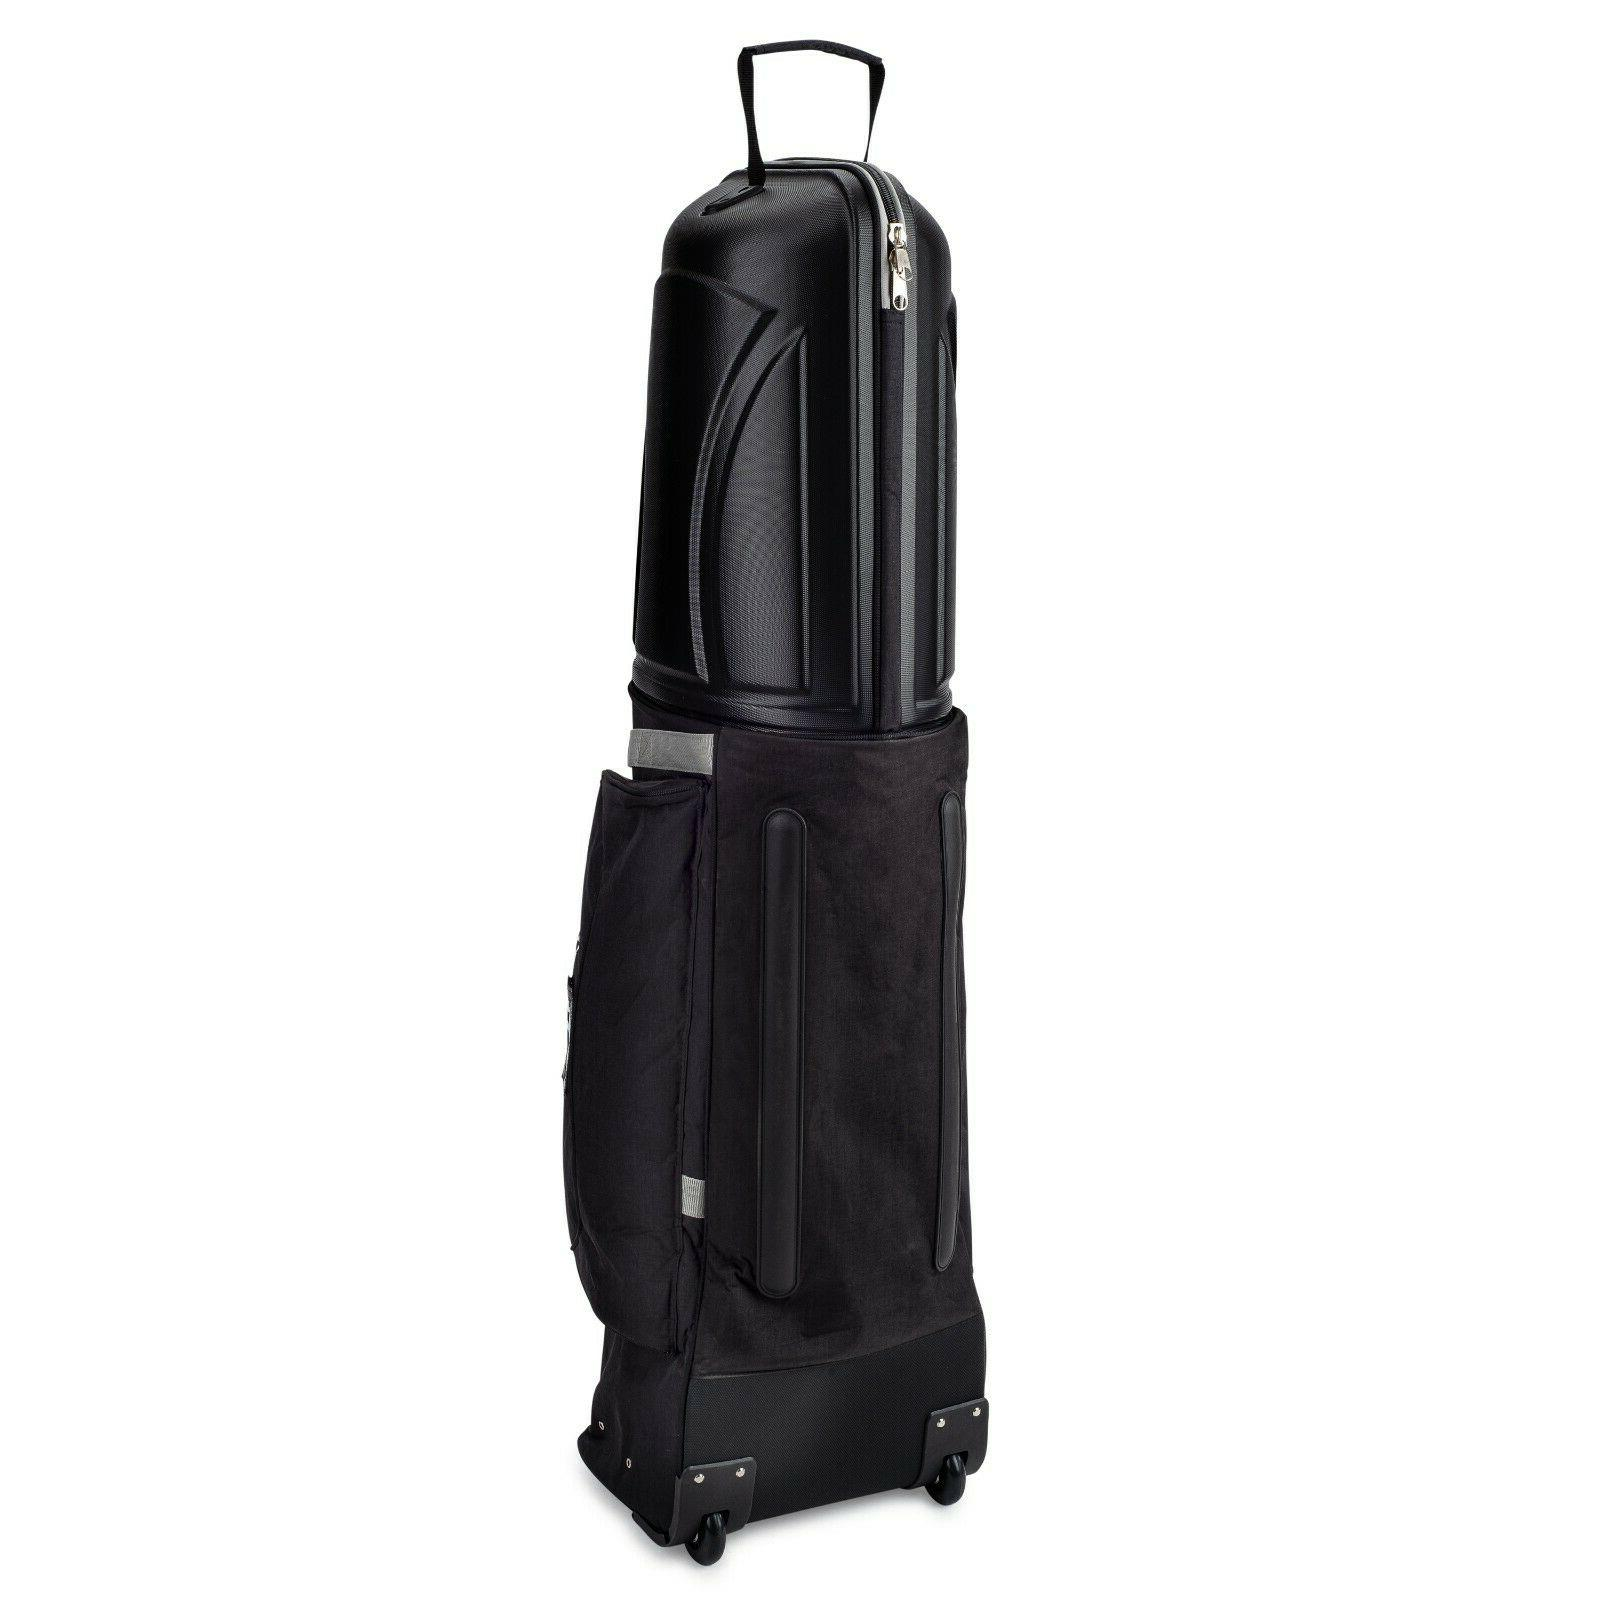 Founders Club Travel Travel Luggage Shell Top